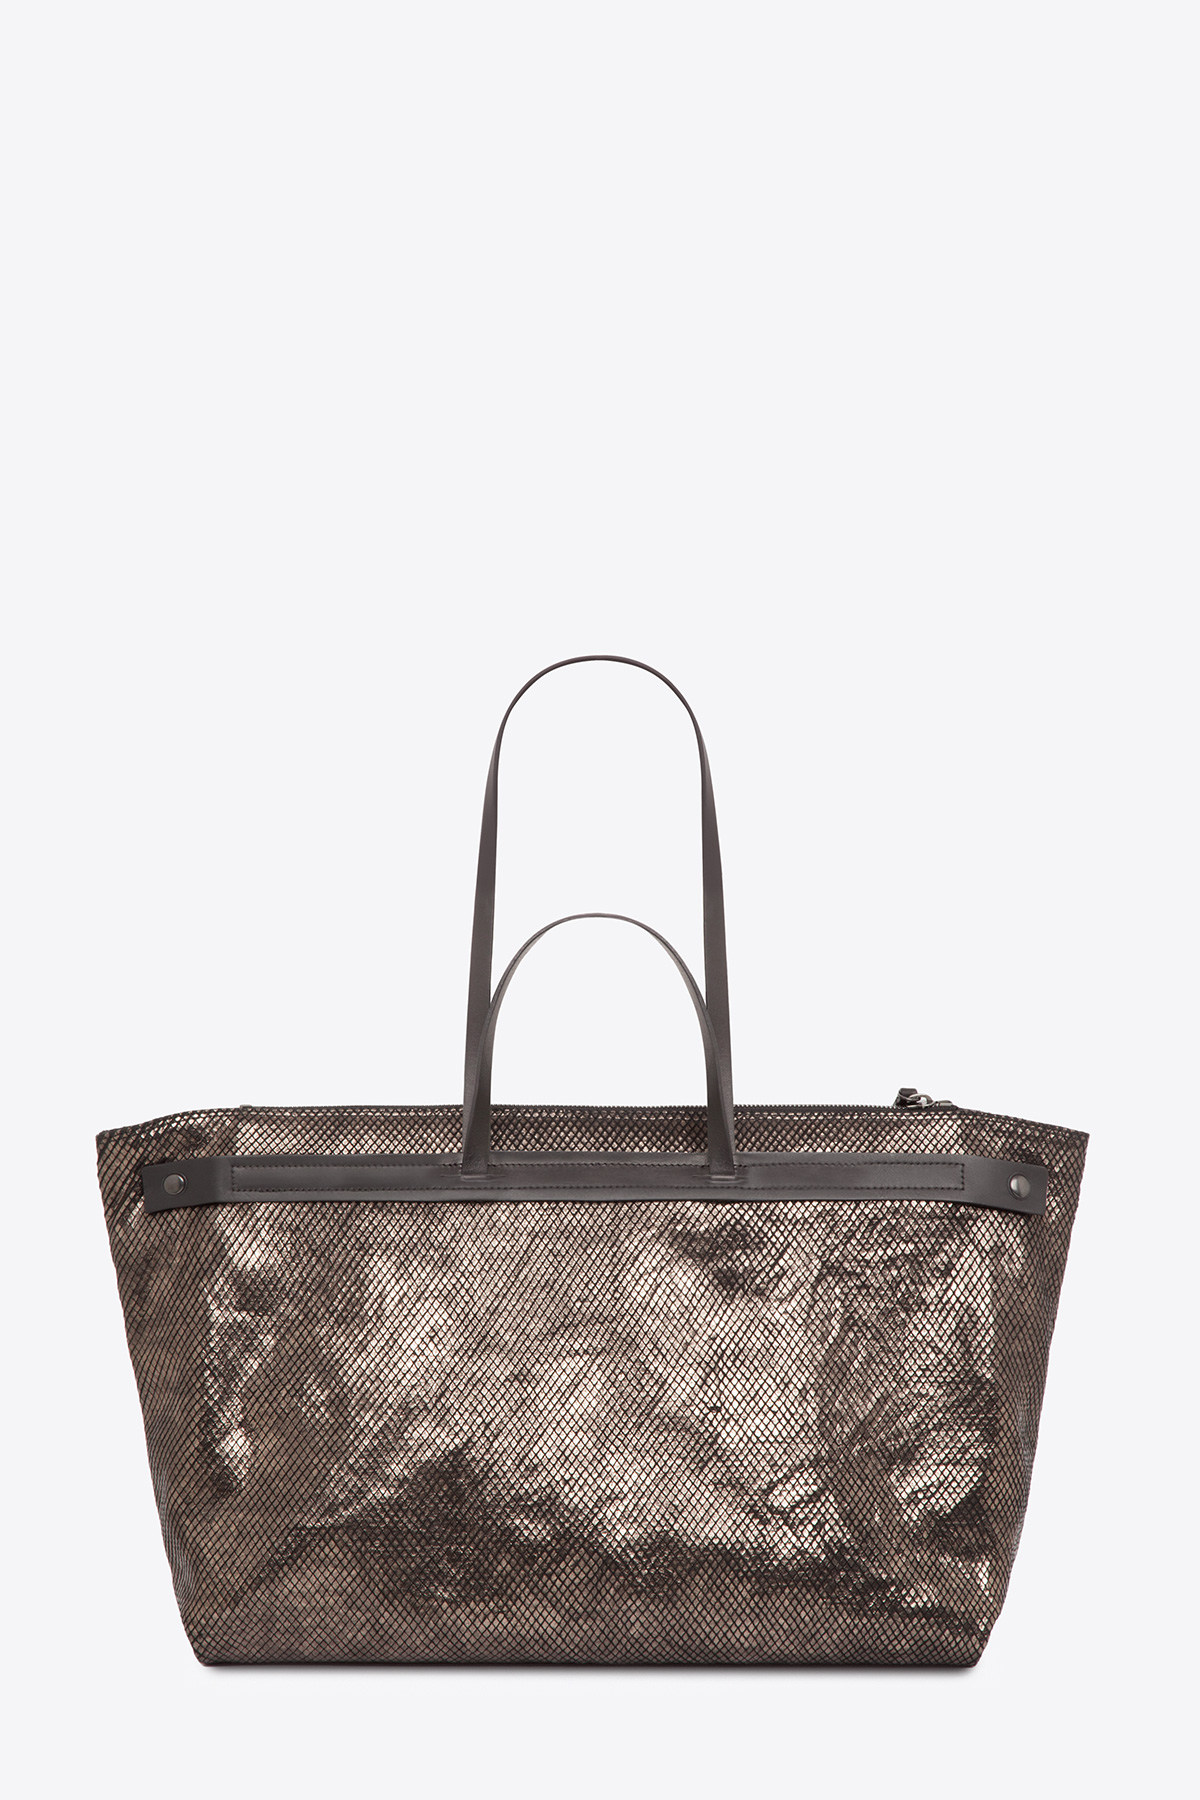 dclr007l-tote-a24-backsnakebronze-back2